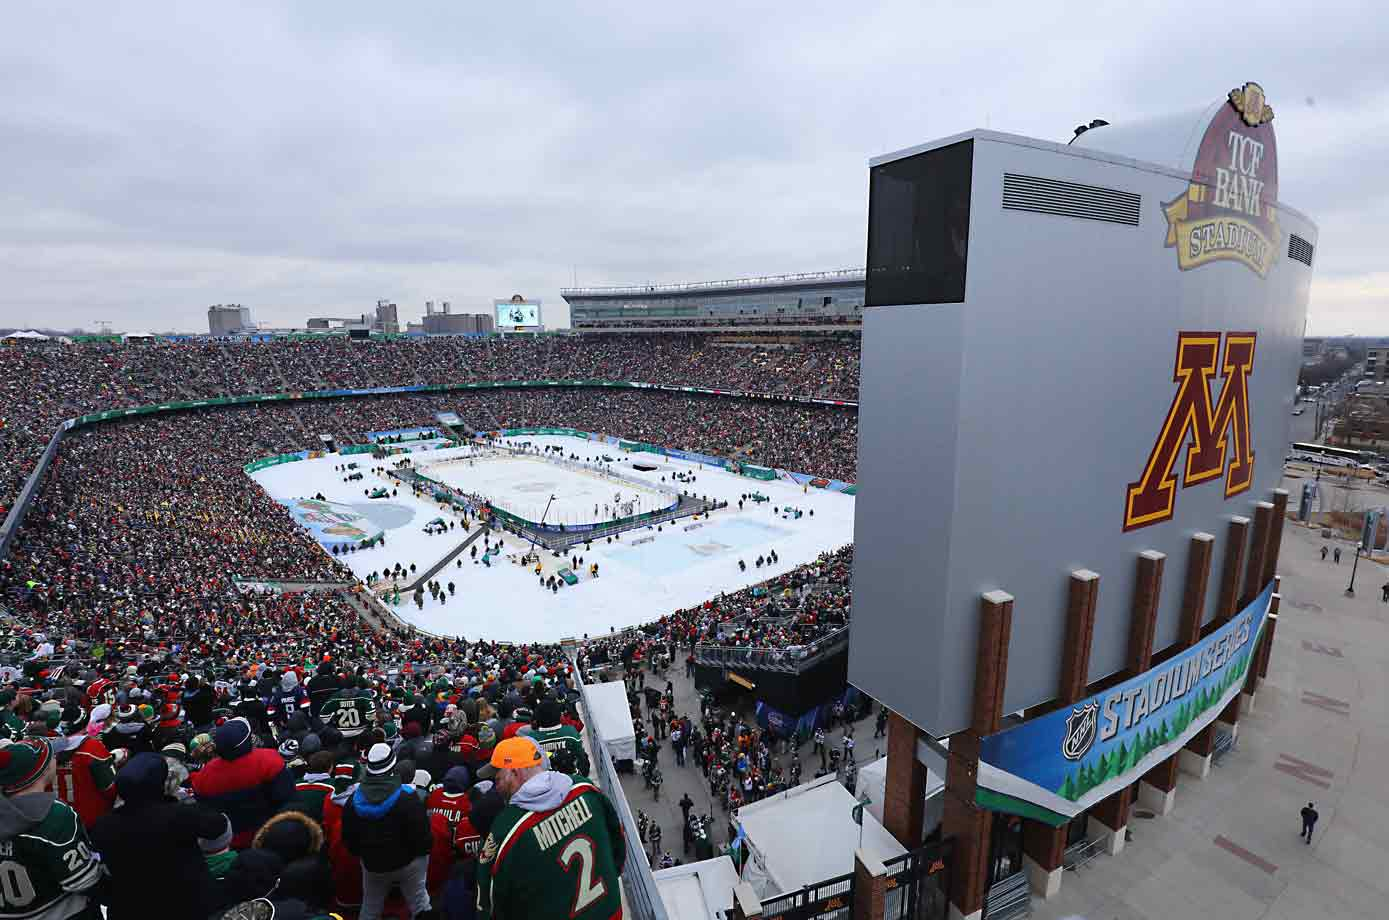 Since the NHL staged its first Winter Classic on Jan. 1, 2008 outdoor games have proved to be extremely popular with fans as well as players. Minnesota got its first on Feb. 21, 2016, a tilt against the Central Division rival Chicago Blackhawks at TCF Bank Stadium on the campus of the University of Minnesota.